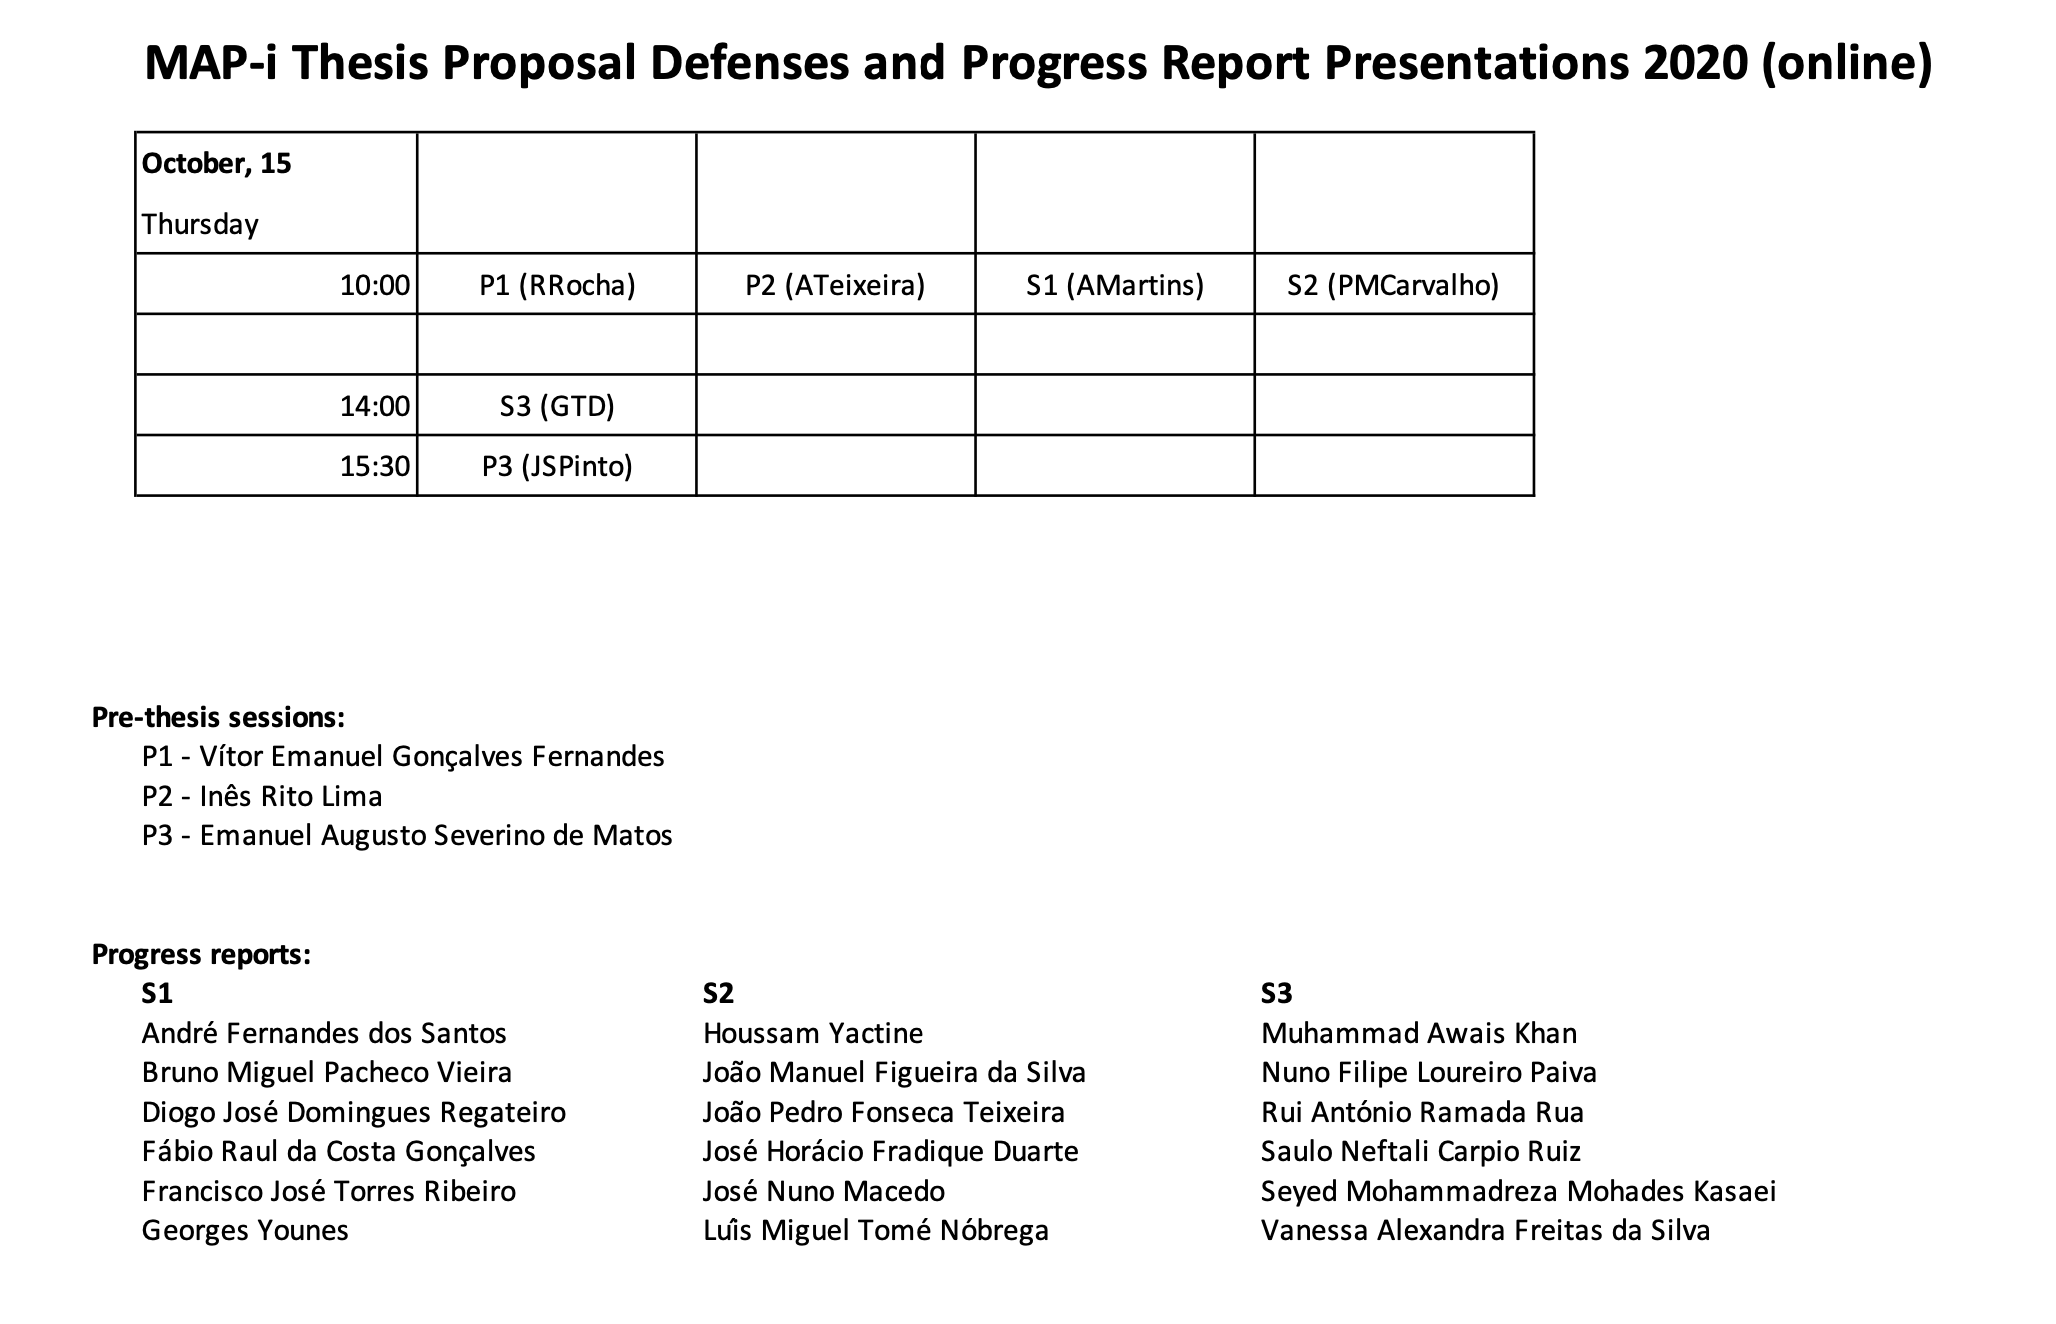 Thesis Proposal Defenses and Progress Report Presentations 2020 (online)